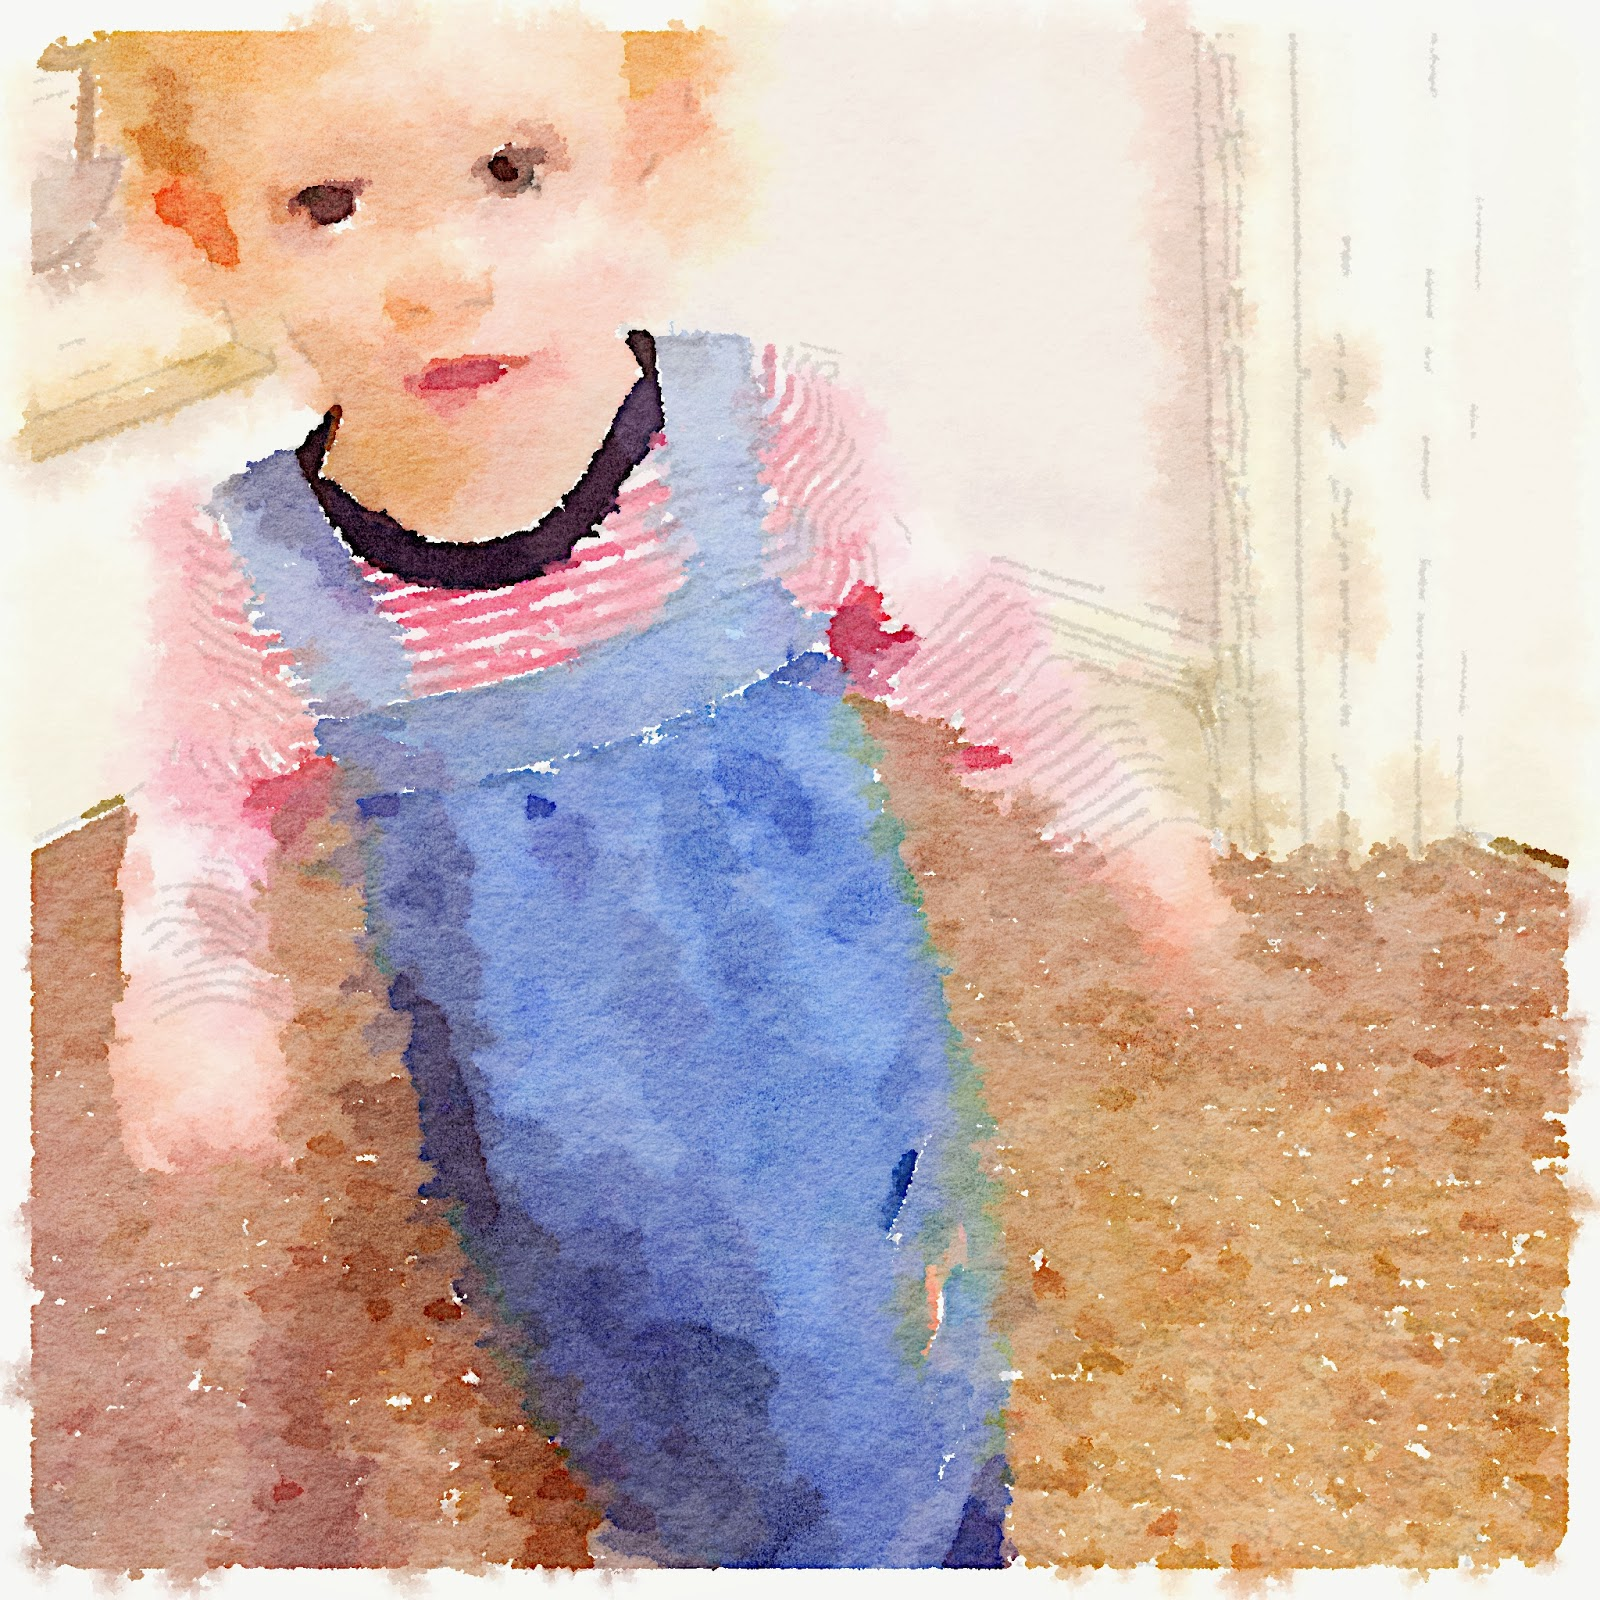 mamasVIB | V. I. BUSY BEES: How to turn your baby picts in works of art… that's as easy as ABC! | How to turn your baby picts in works of art | waterlogged app | phone and iPad add | turn your pictures into art | make watercolour painting out of your photos | creative photographs | mamasVIB